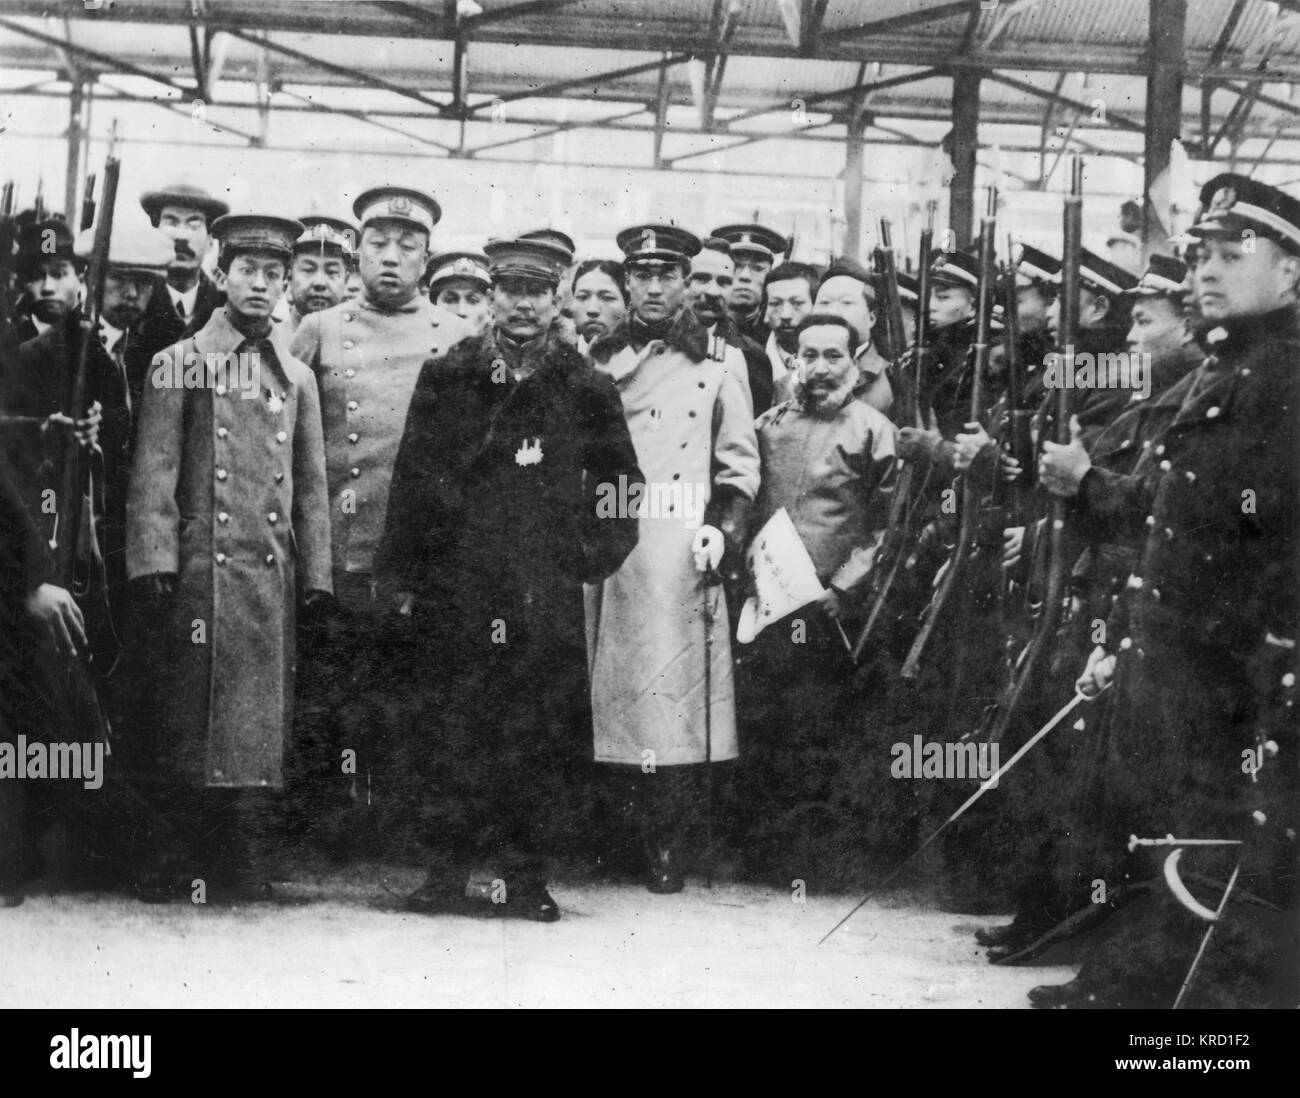 Sun Yat Sen (1866-1925) (at the centre in a fur coat) leaving Shanghai for Nanking to assume his position as President - Stock Image